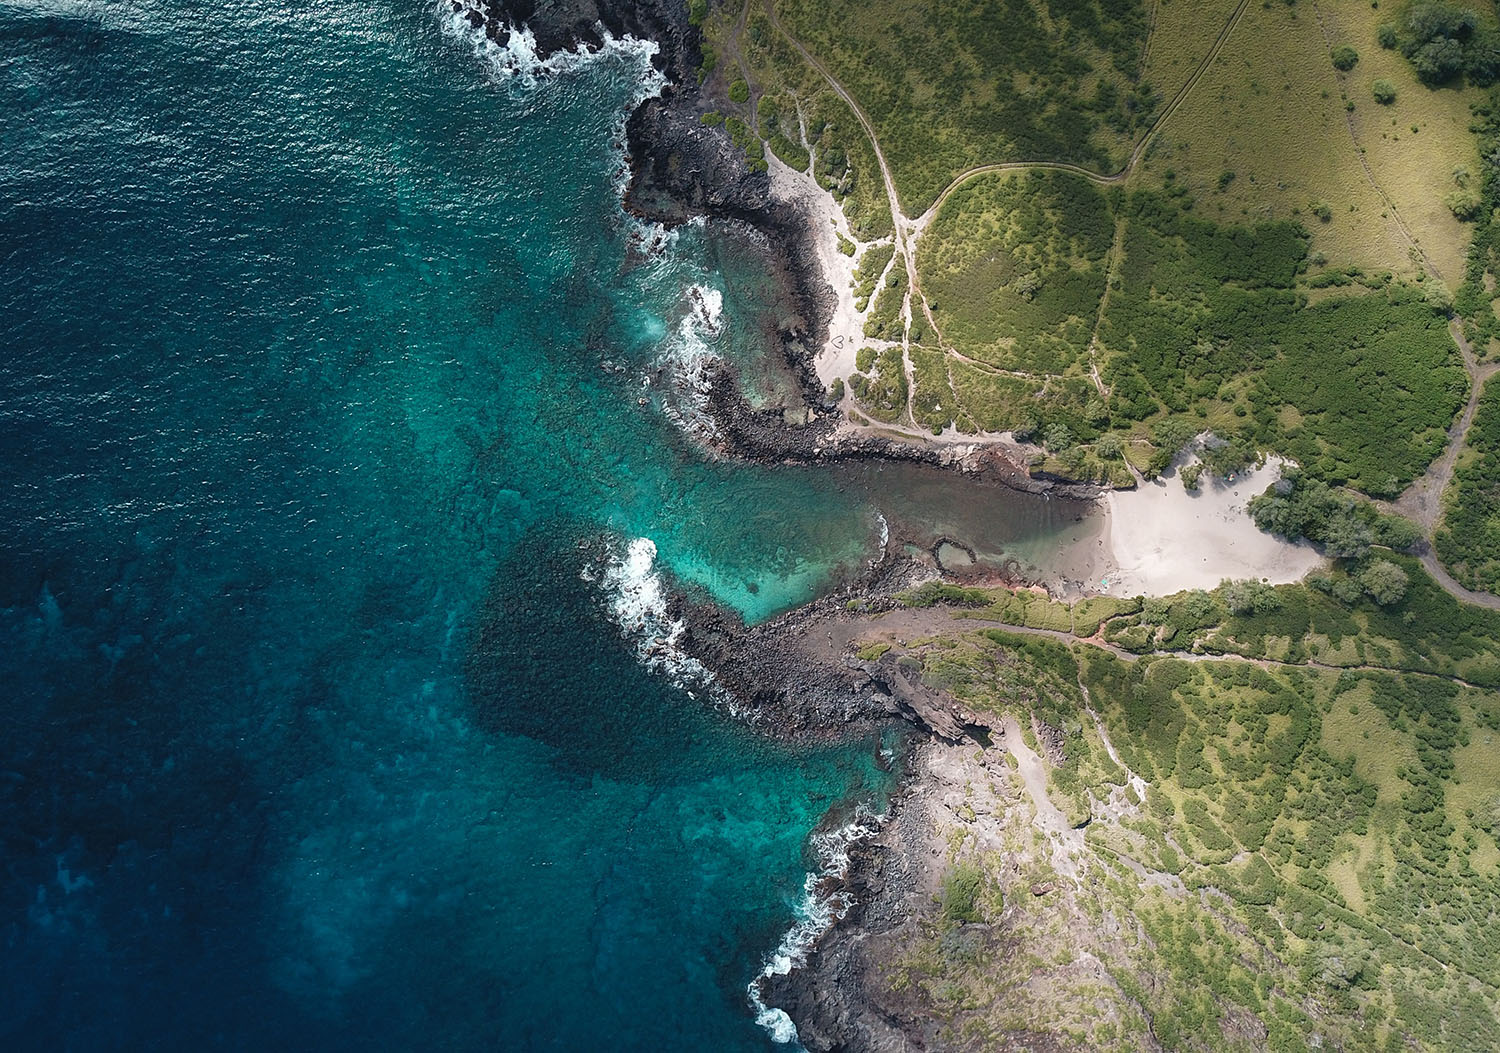 Pele's Chair, Hawaii from a drone